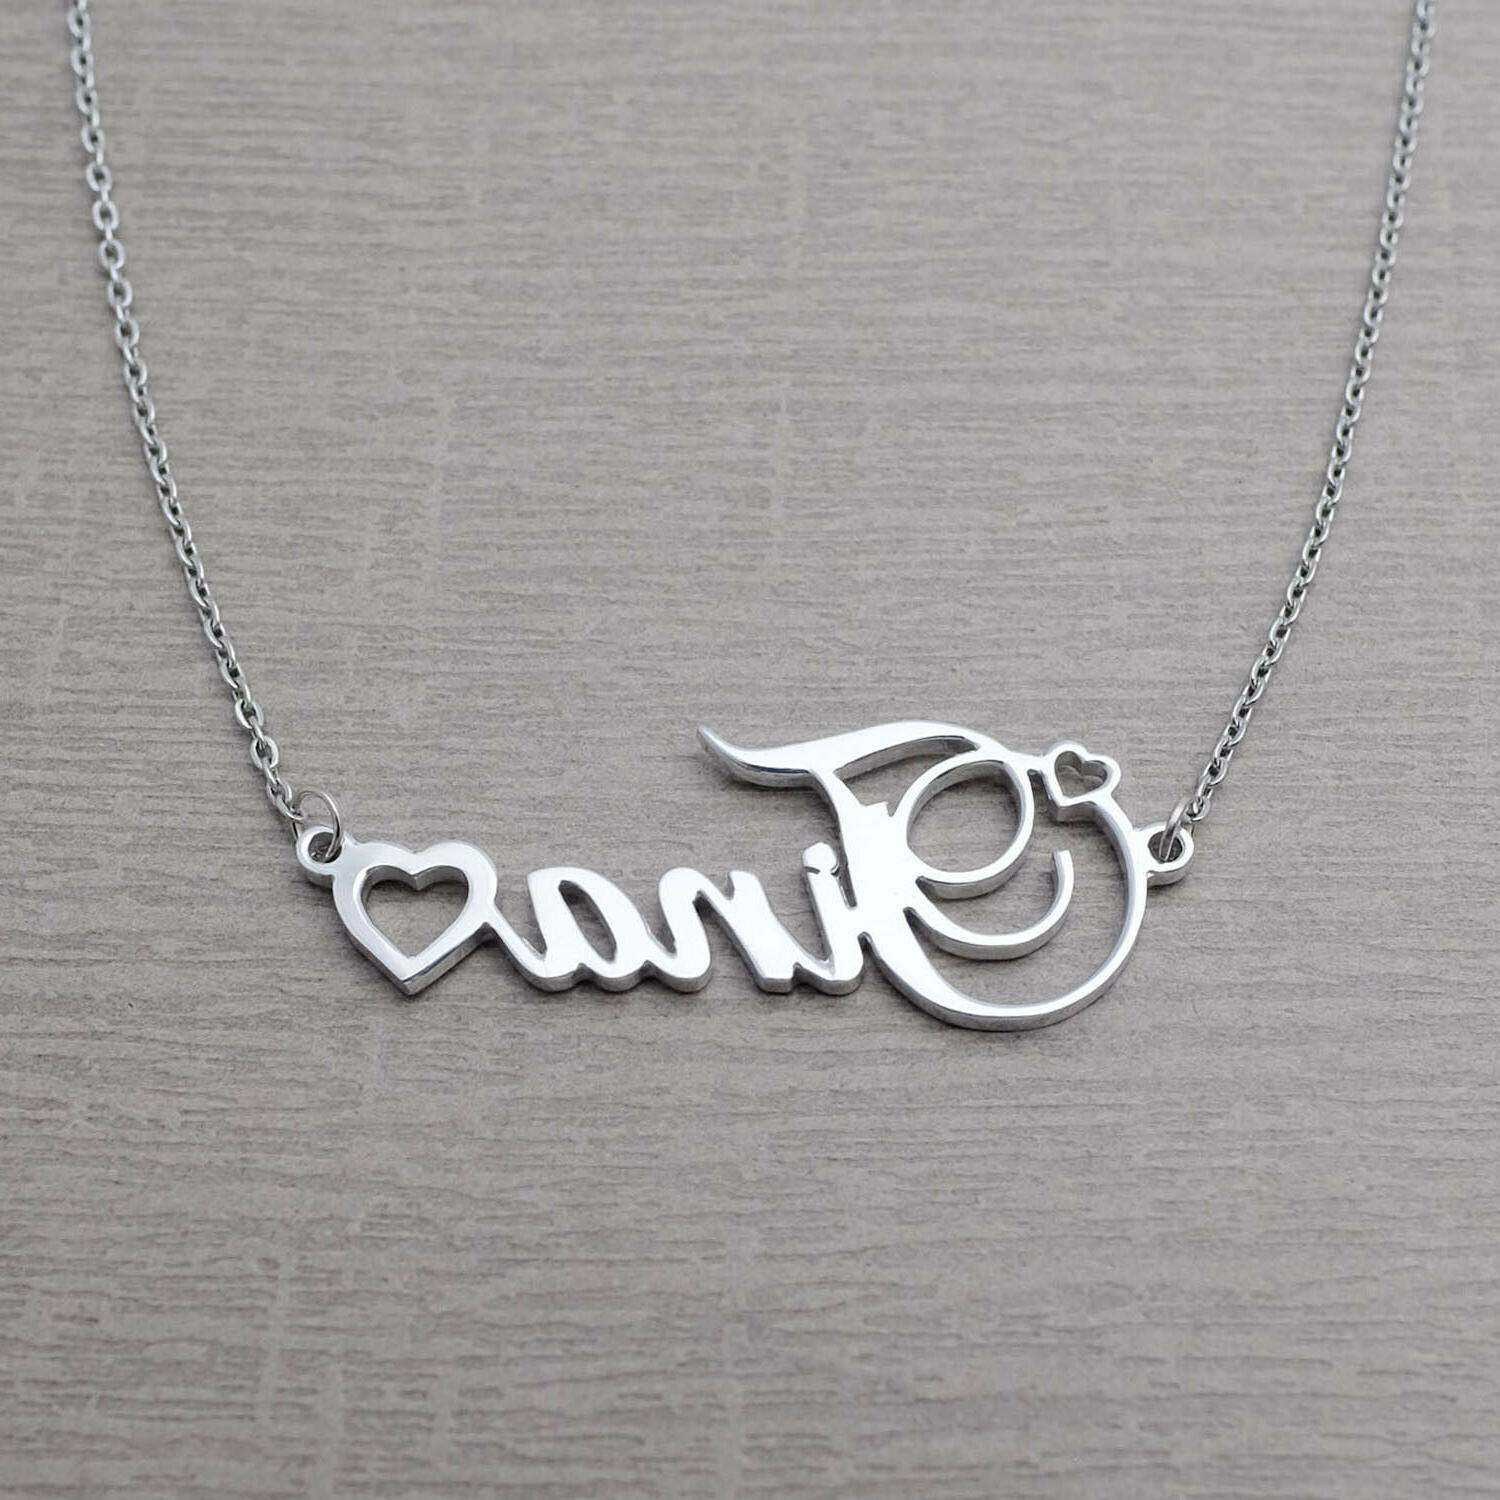 Name Necklace Custom Pendant Gift for